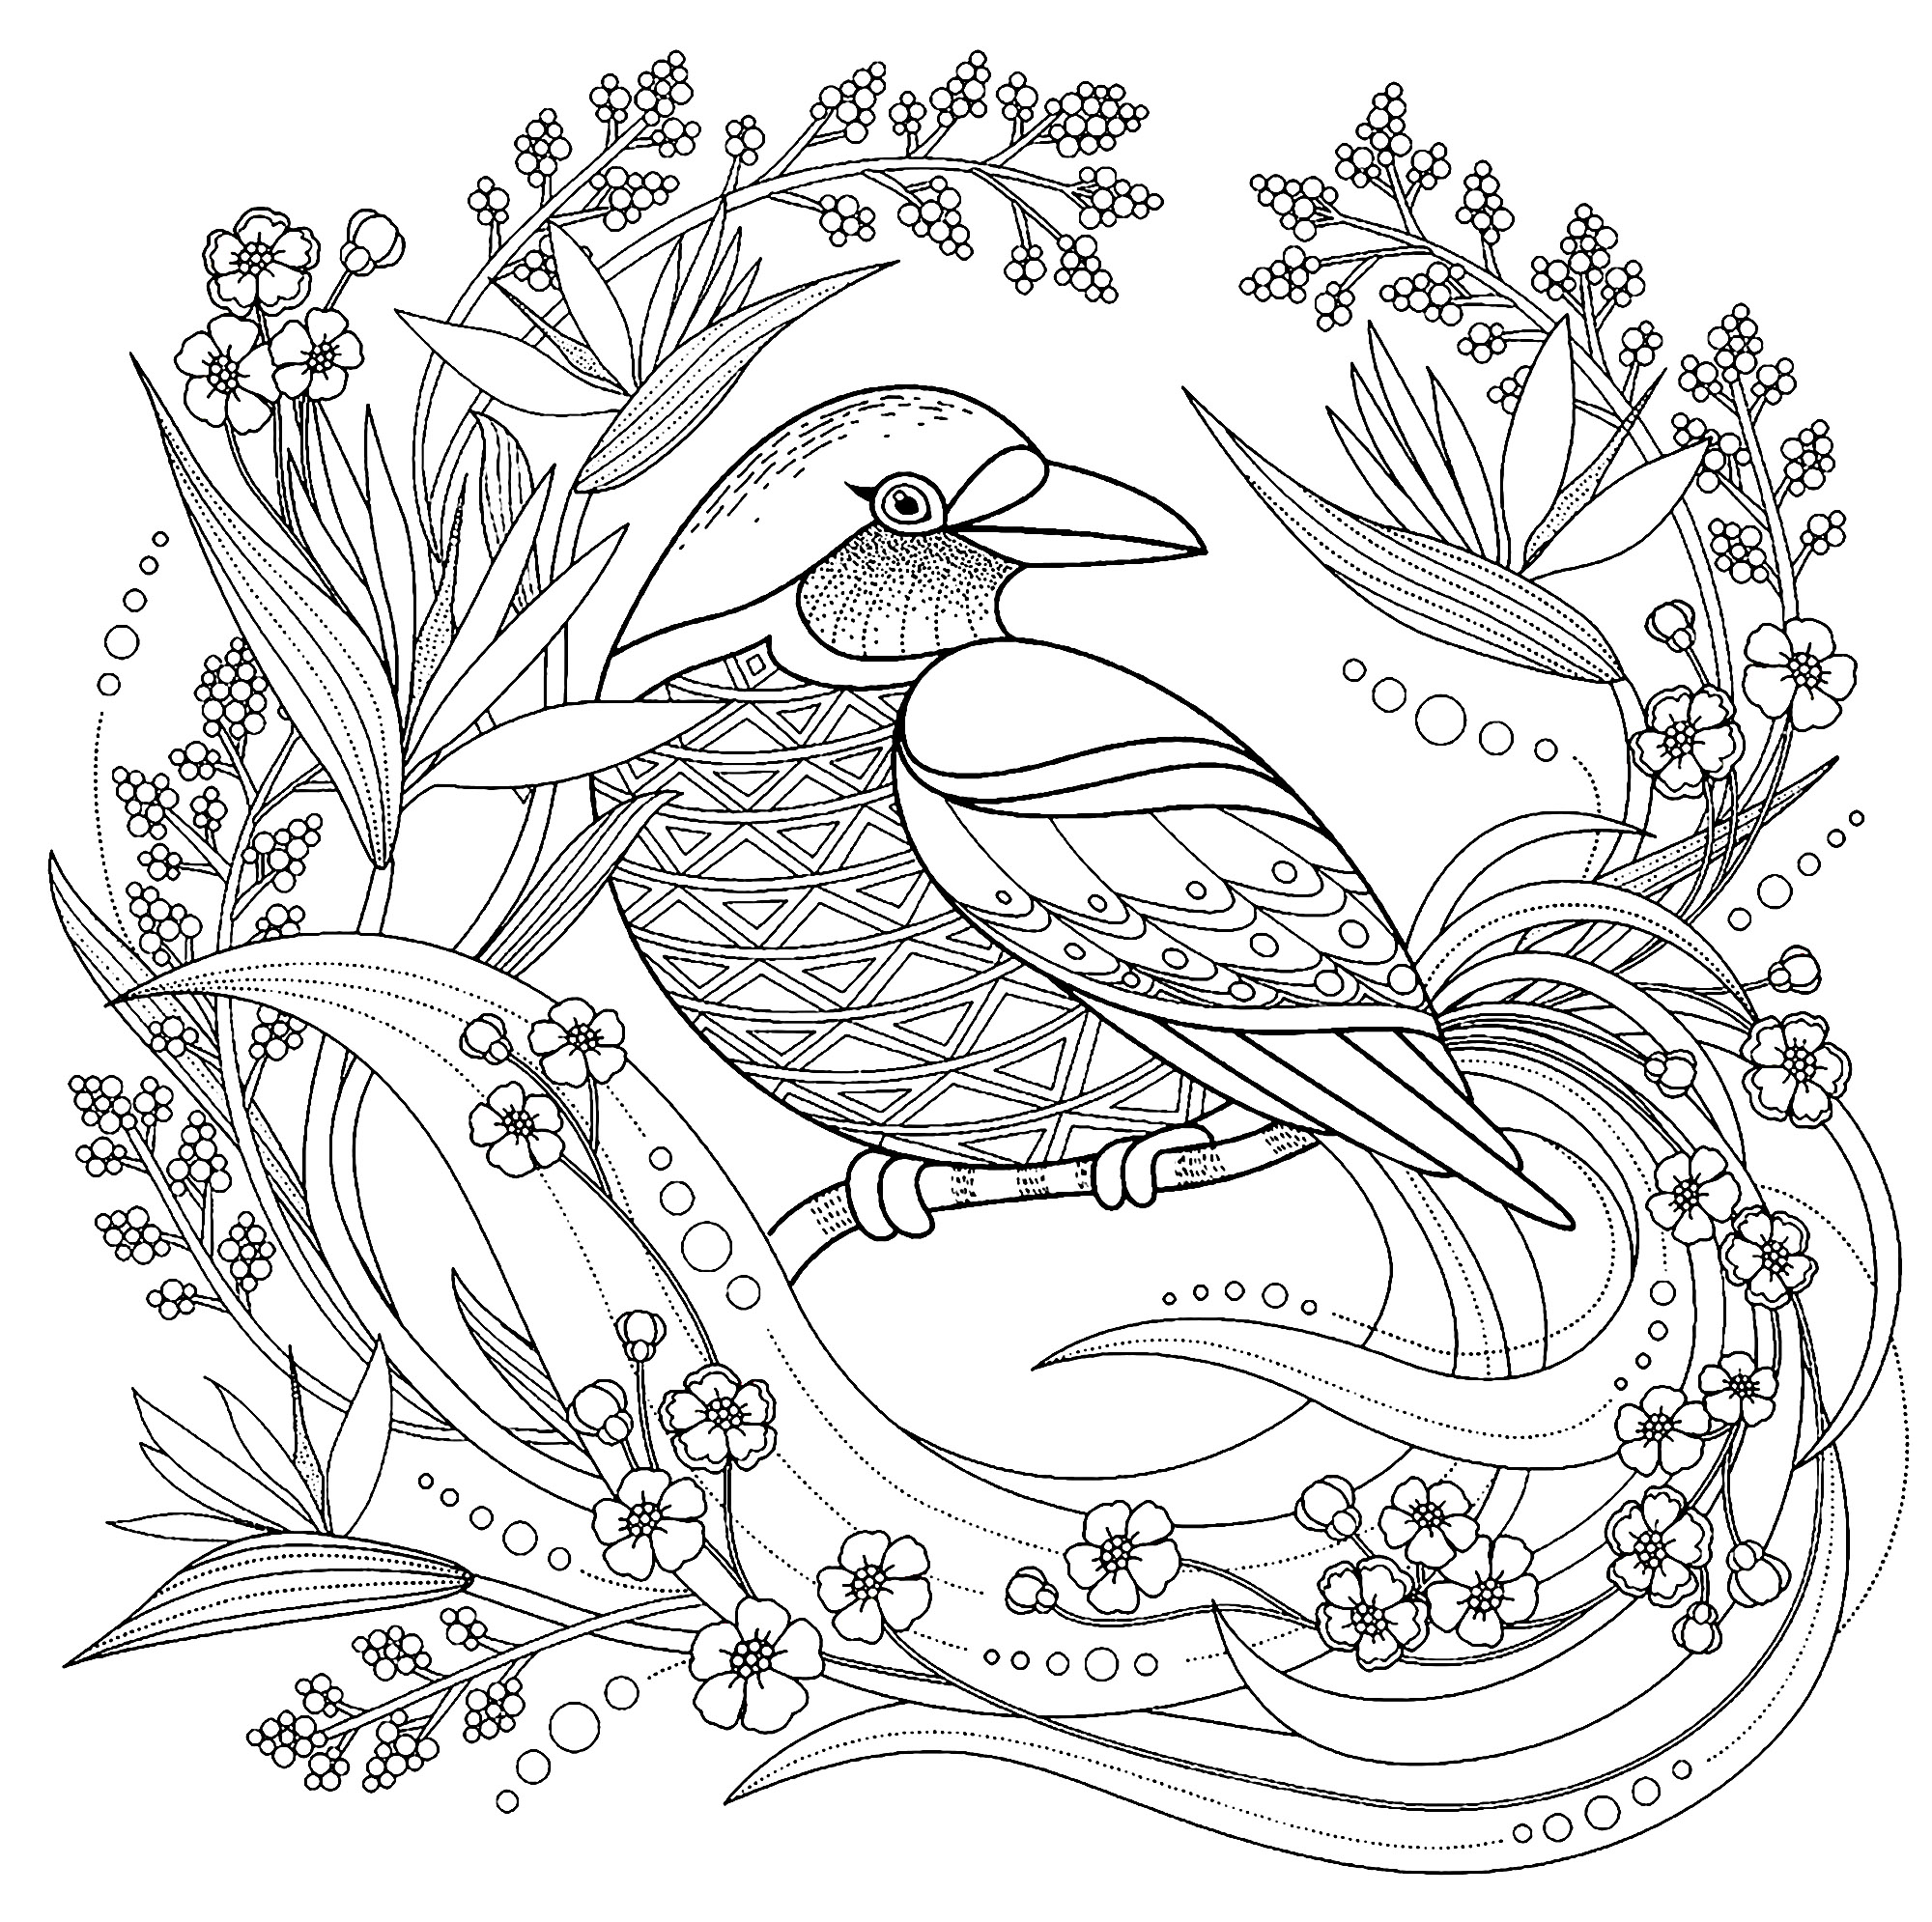 bird coloring pages for adults birds free to color for children birds kids coloring pages coloring adults pages bird for